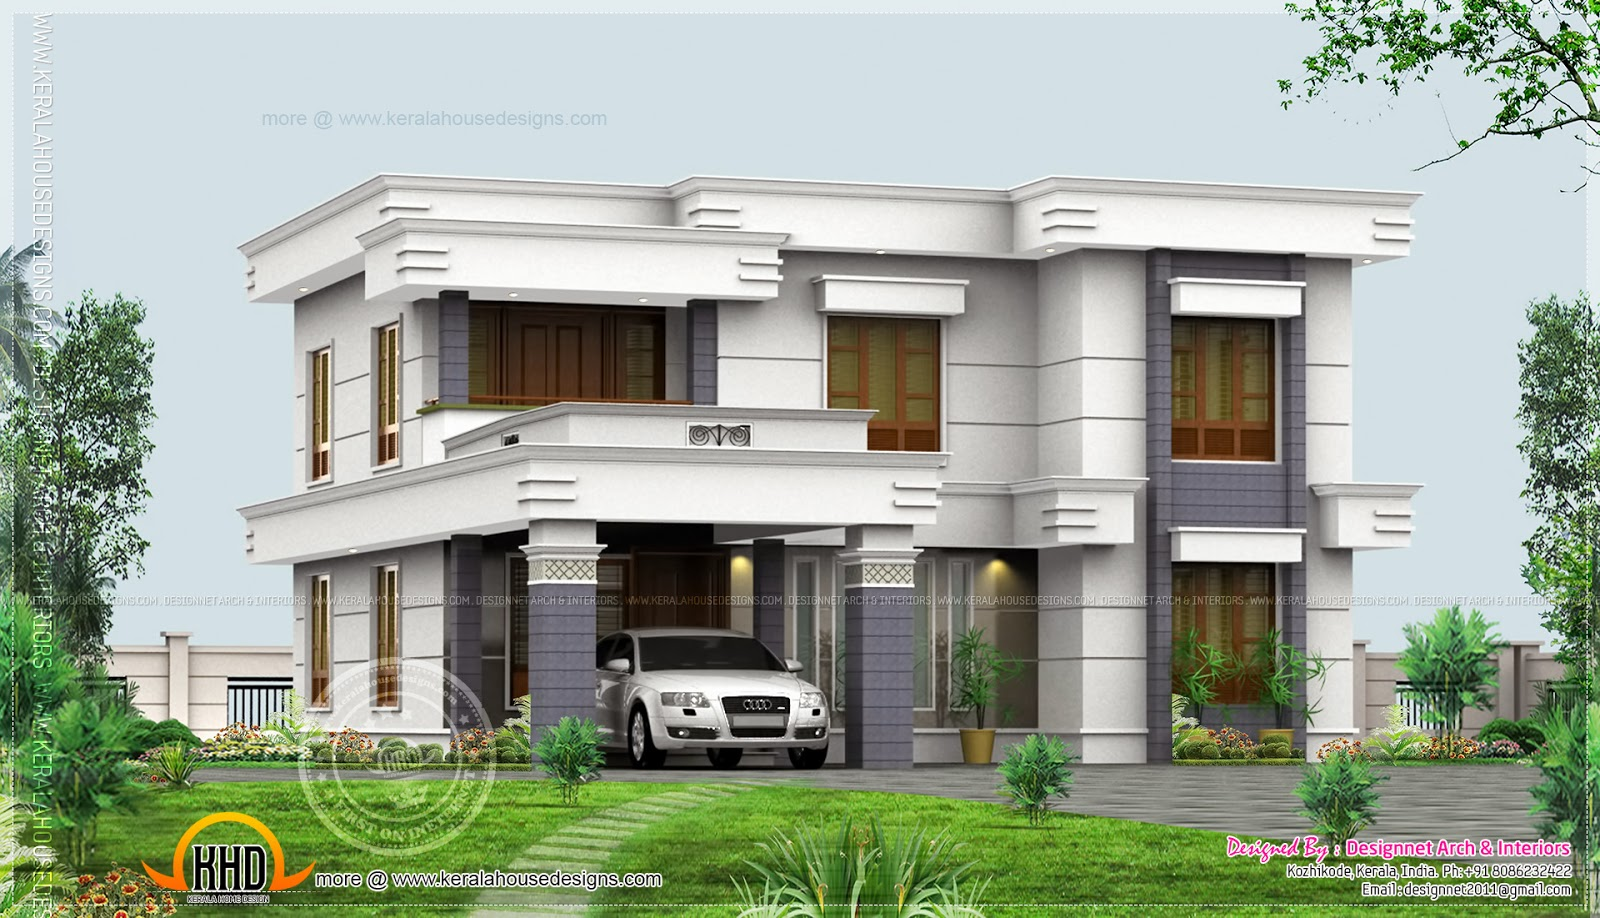 4 bedroom flat roof design in 2500 indian house plans House plan flat roof design